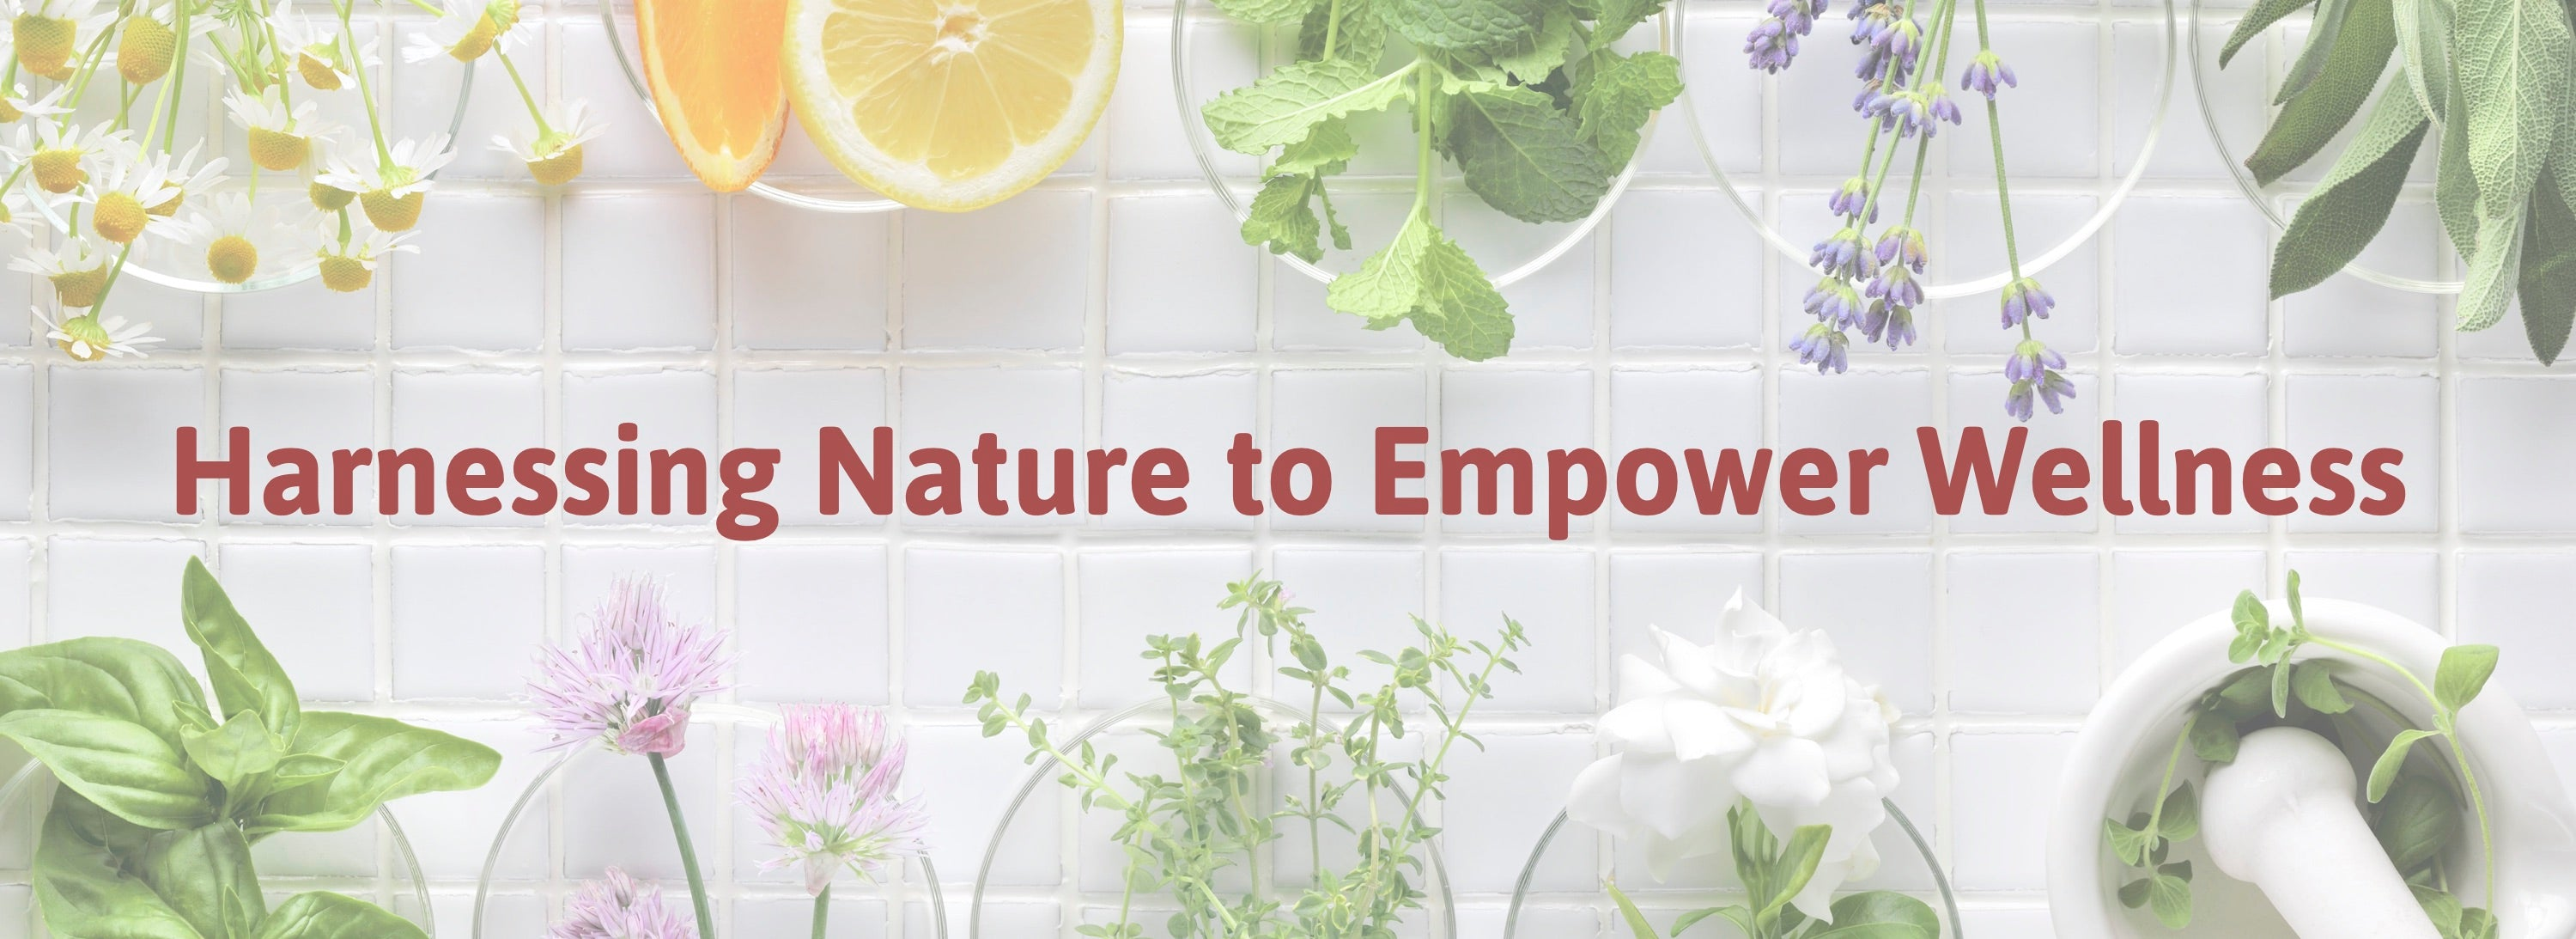 Harnessing Nature to Empower Wellness